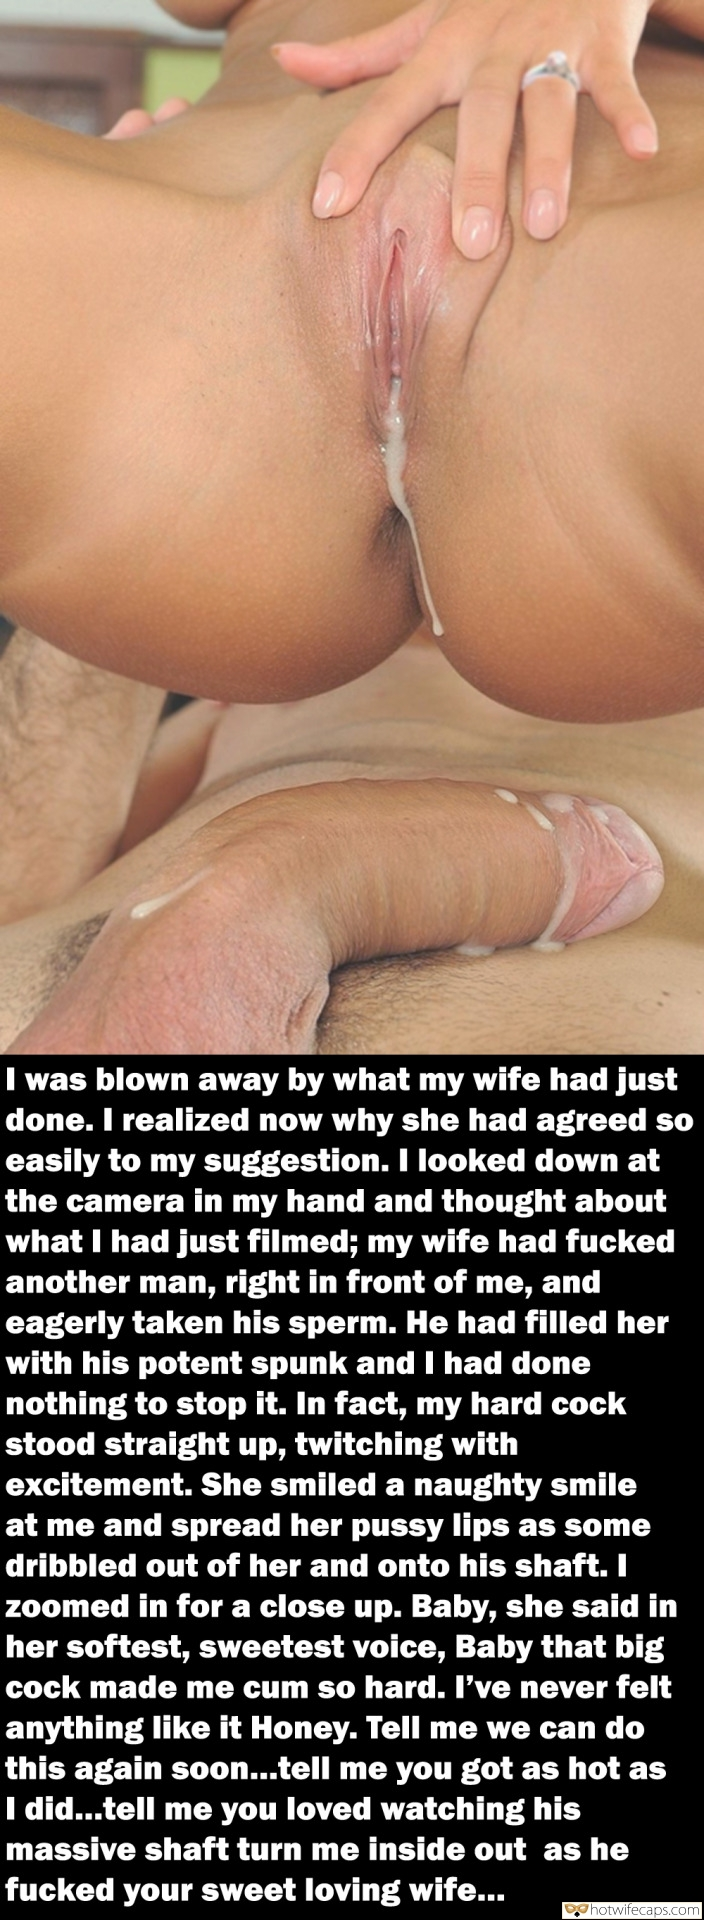 Impregnation Cum Dump Creampie Bigger Cock  hotwife caption: I was blown away by what my wife had just done. I realized now why she had agreed so easily to my suggestion. I looked down at the camera in my hand and thought about what I had just filmed;...